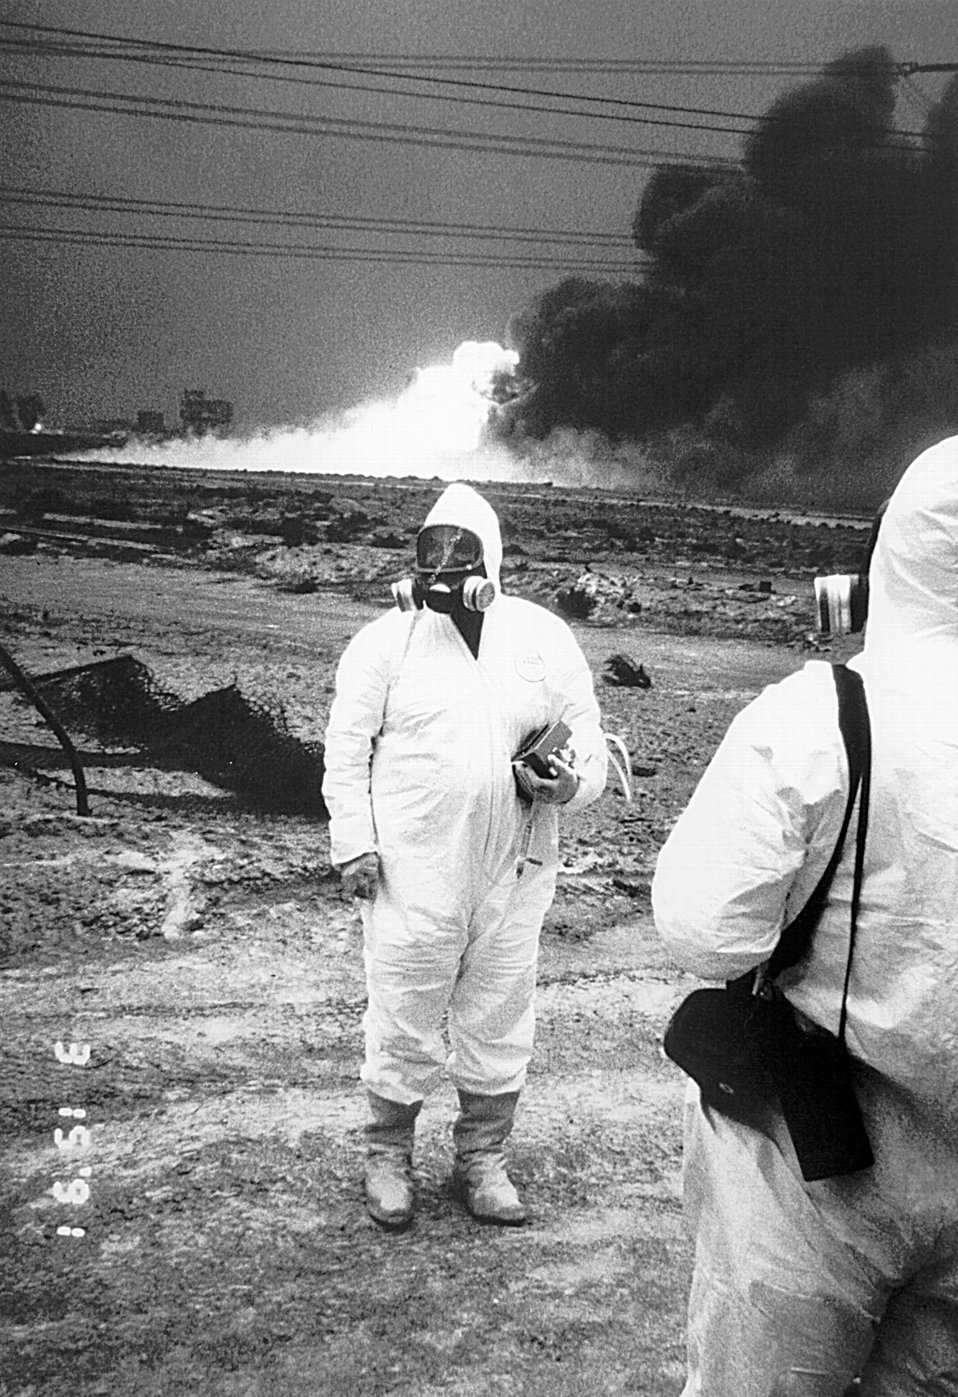 This was a hazmat technician analyzing the contents of a potentially environmentally toxic site wearing a protective suit.